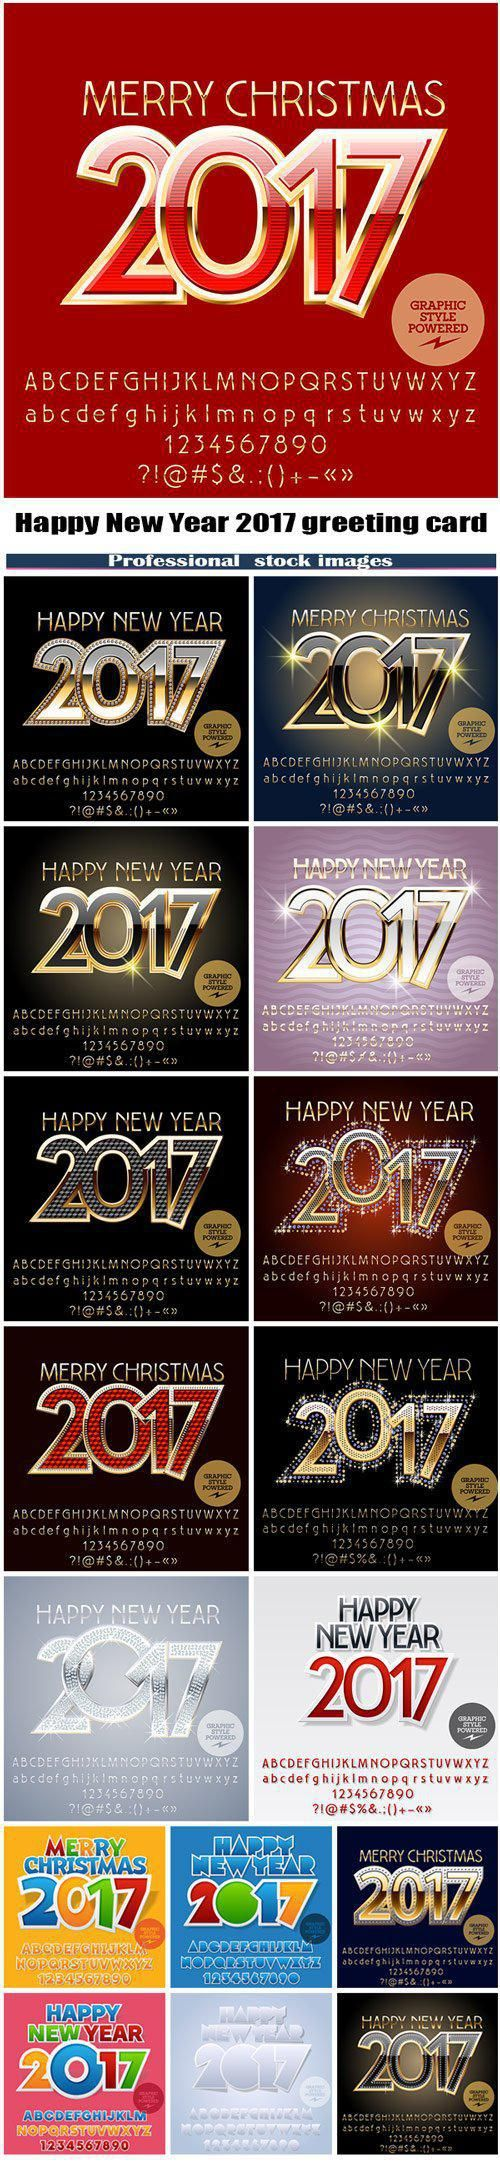 Happy New Year 2017 greeting card with set of letters symbols and numbers